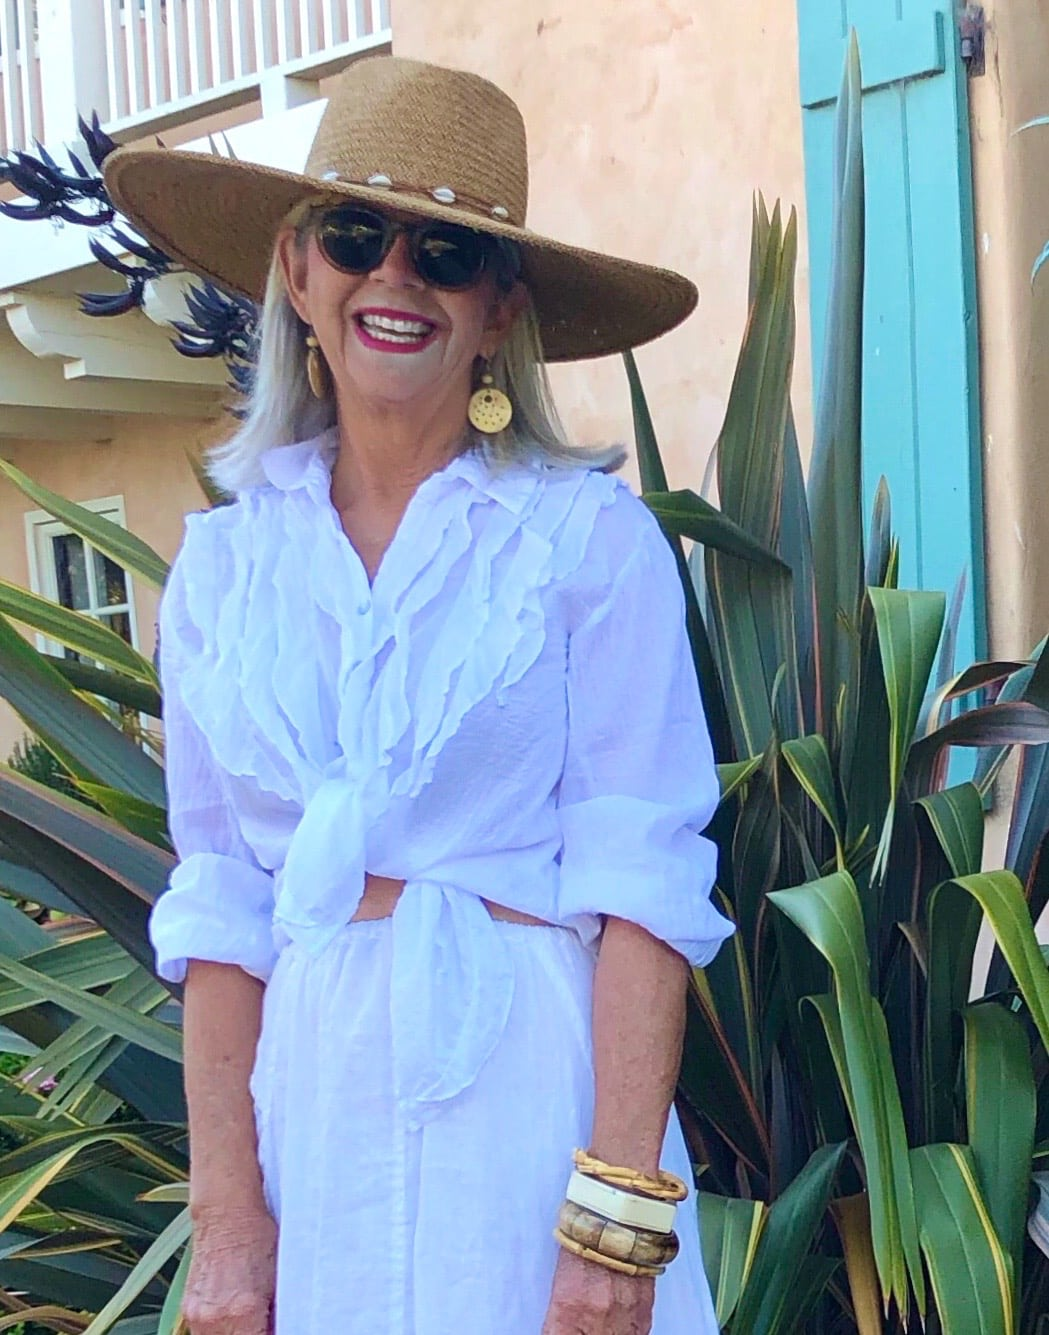 over 50 fashion blogger cindy hattersley in sundance catalog alexi shirt